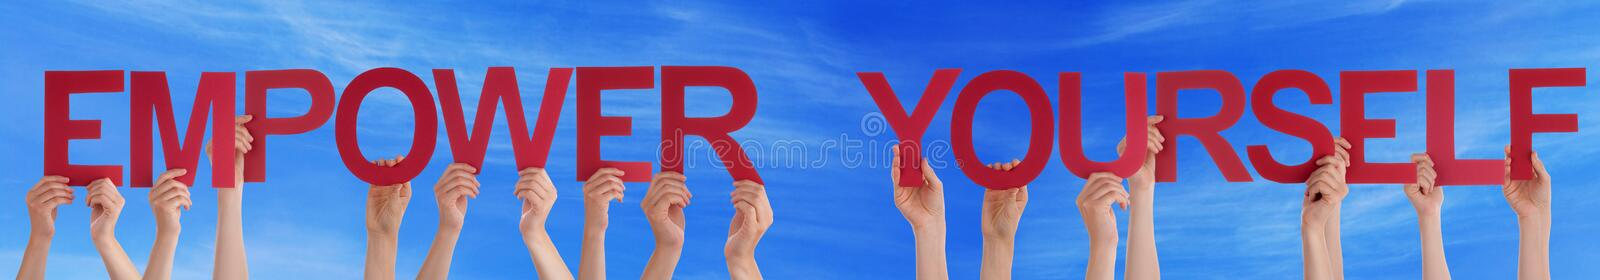 Hands Hold Red Straight Empower Yourself Blue Sky royalty free stock photography